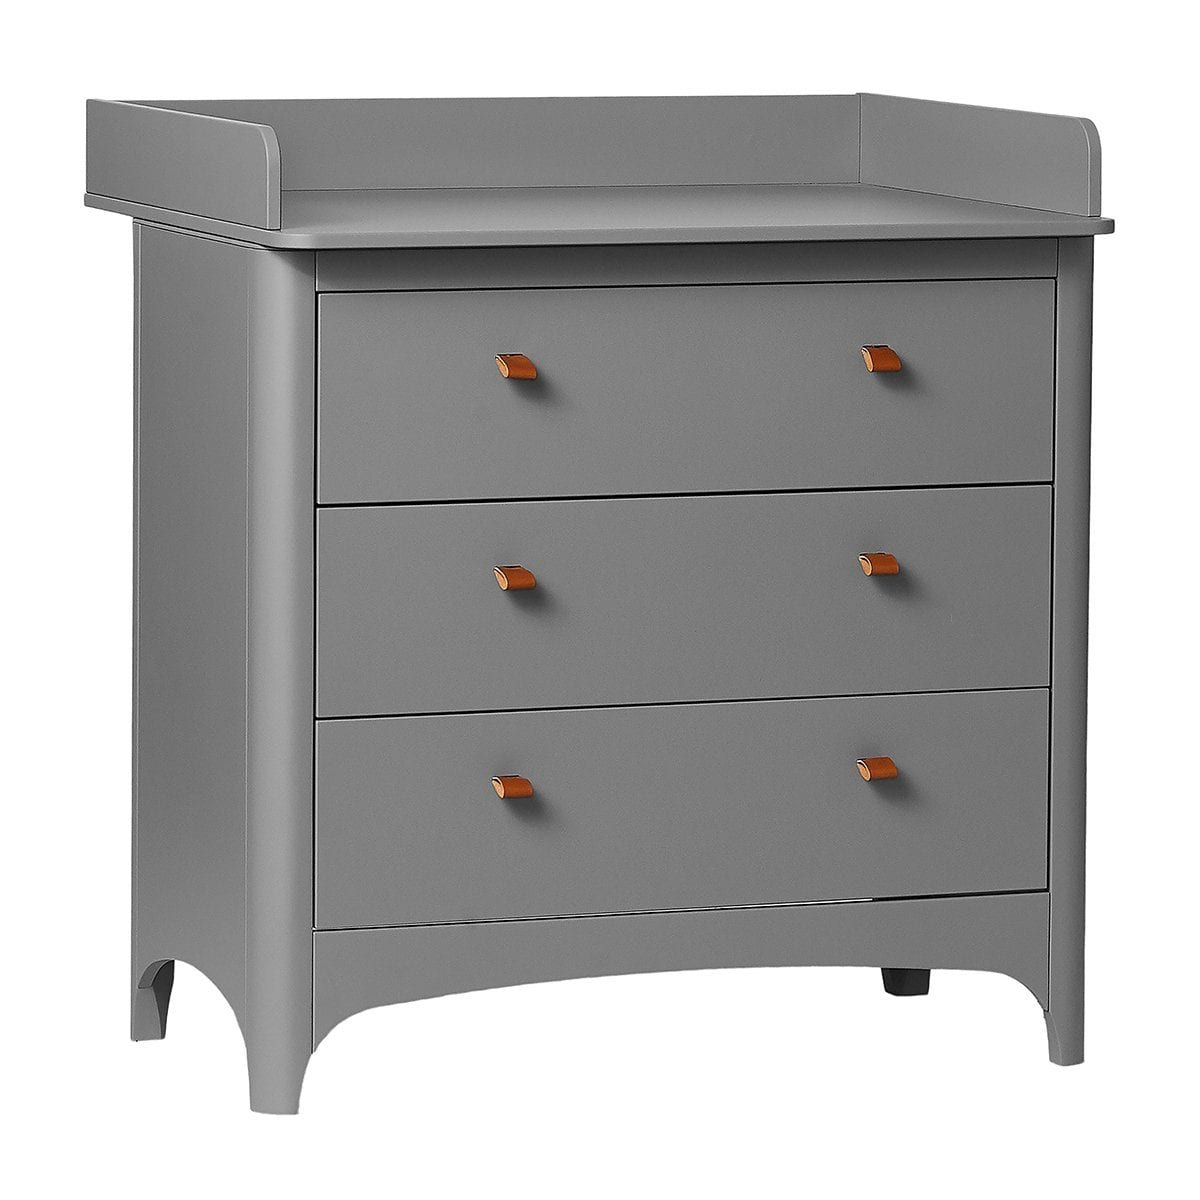 Leander Changing Unit for Classic Dresser - Grey